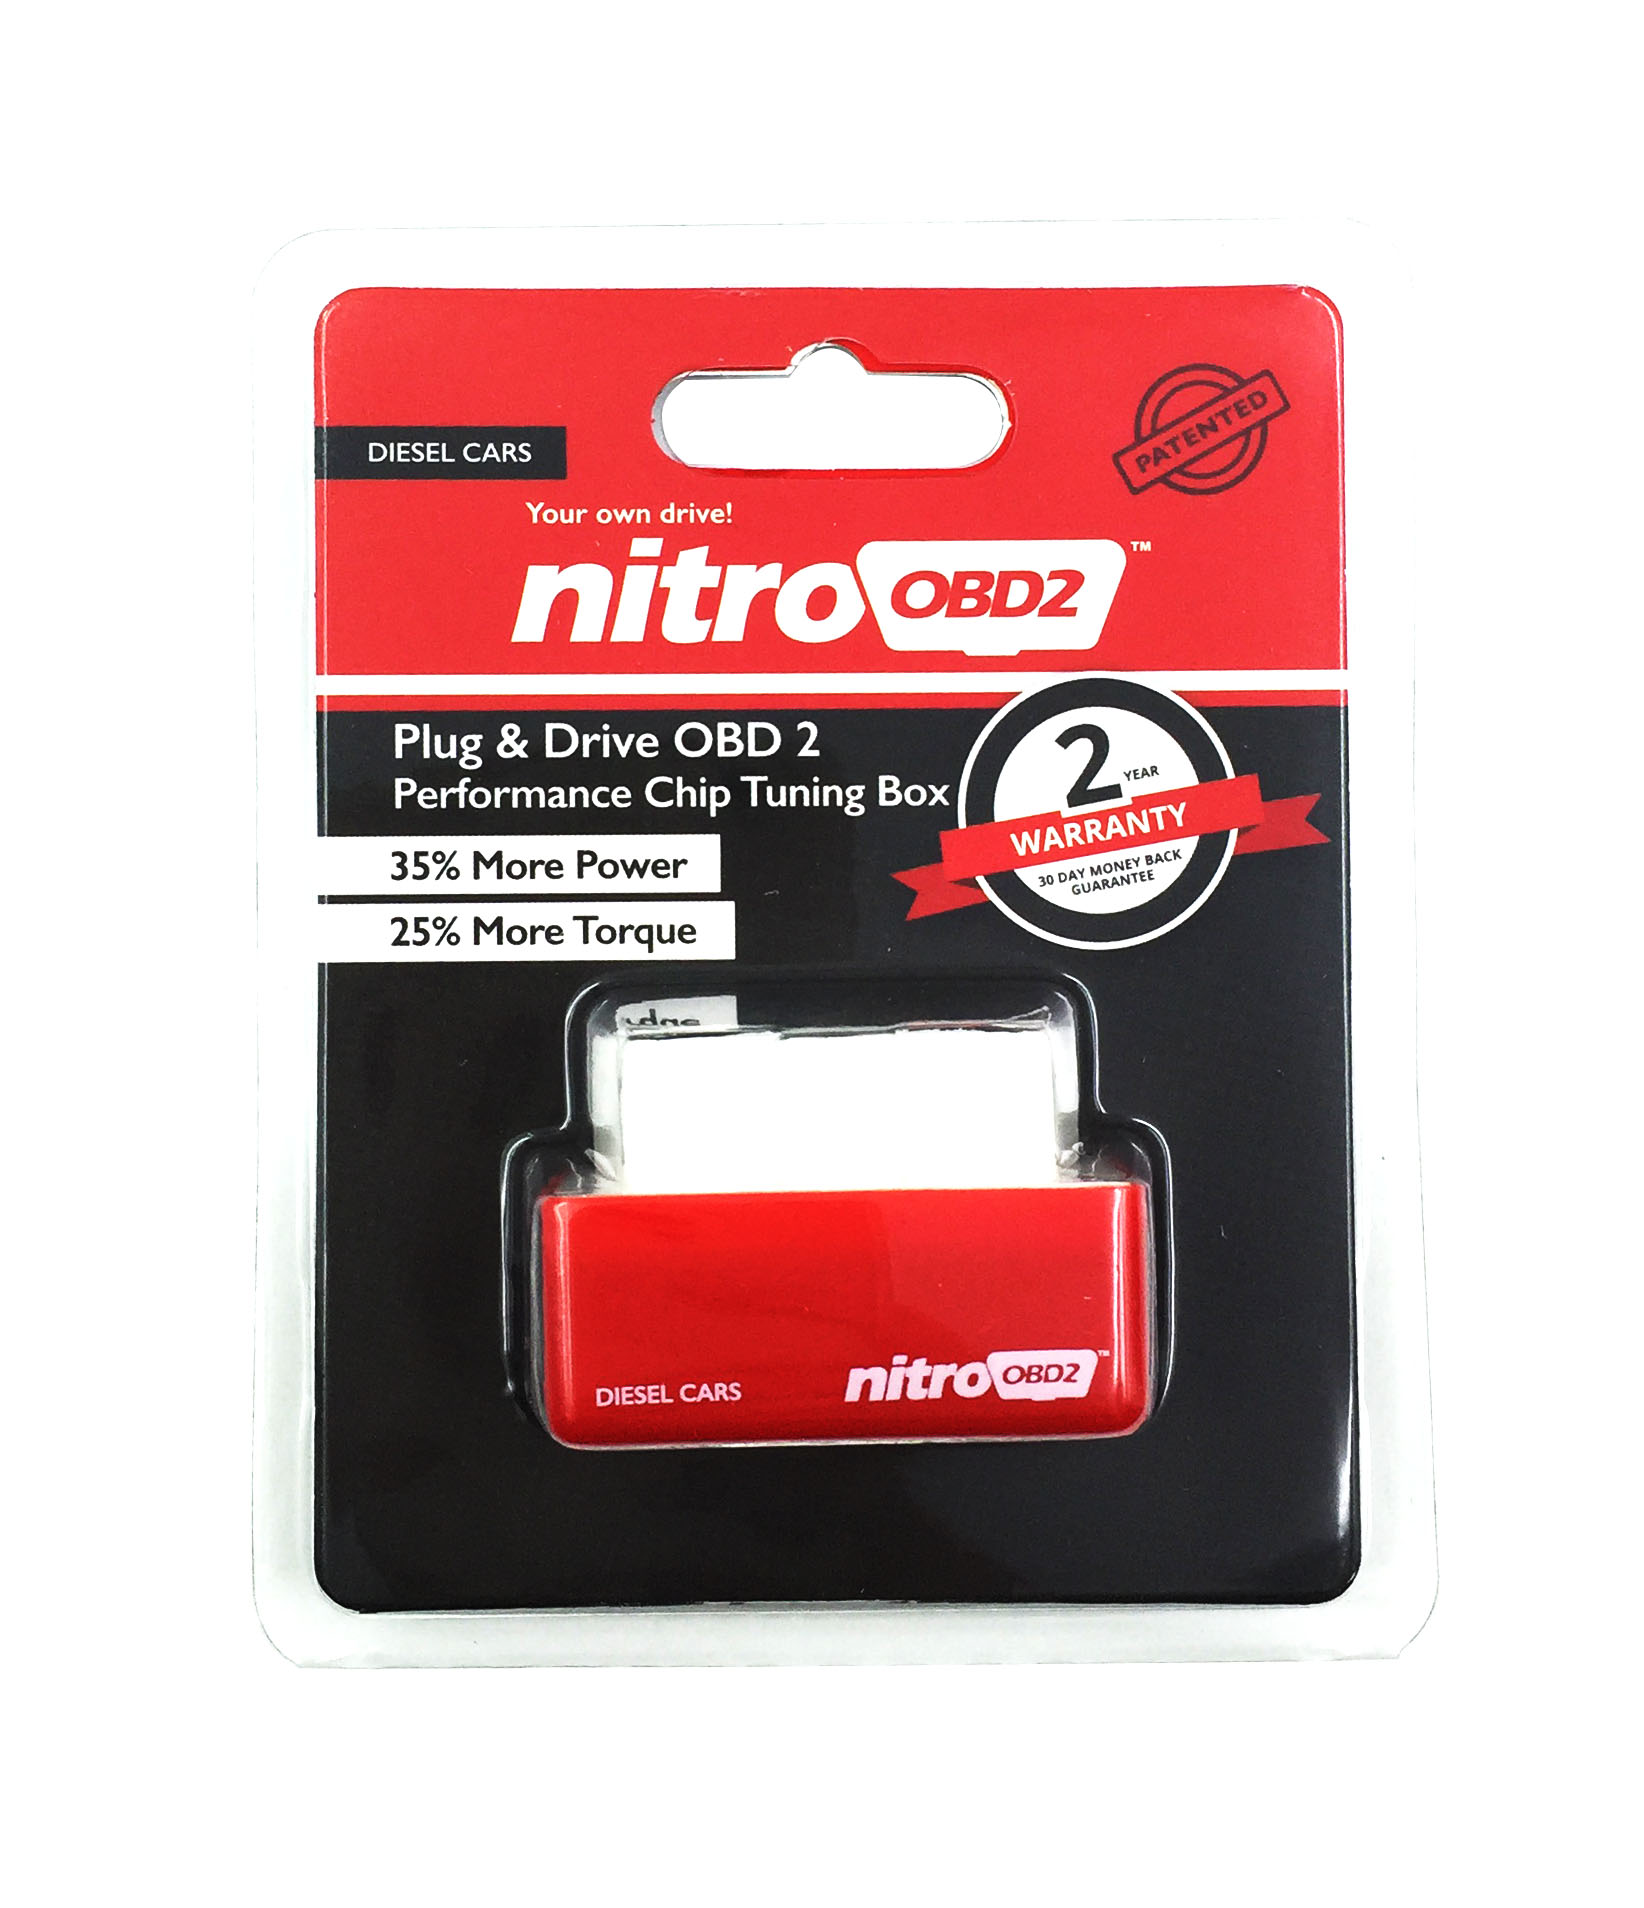 Plug And Drive Nitroobd2 Performance Chip Tuning Box For Diesel